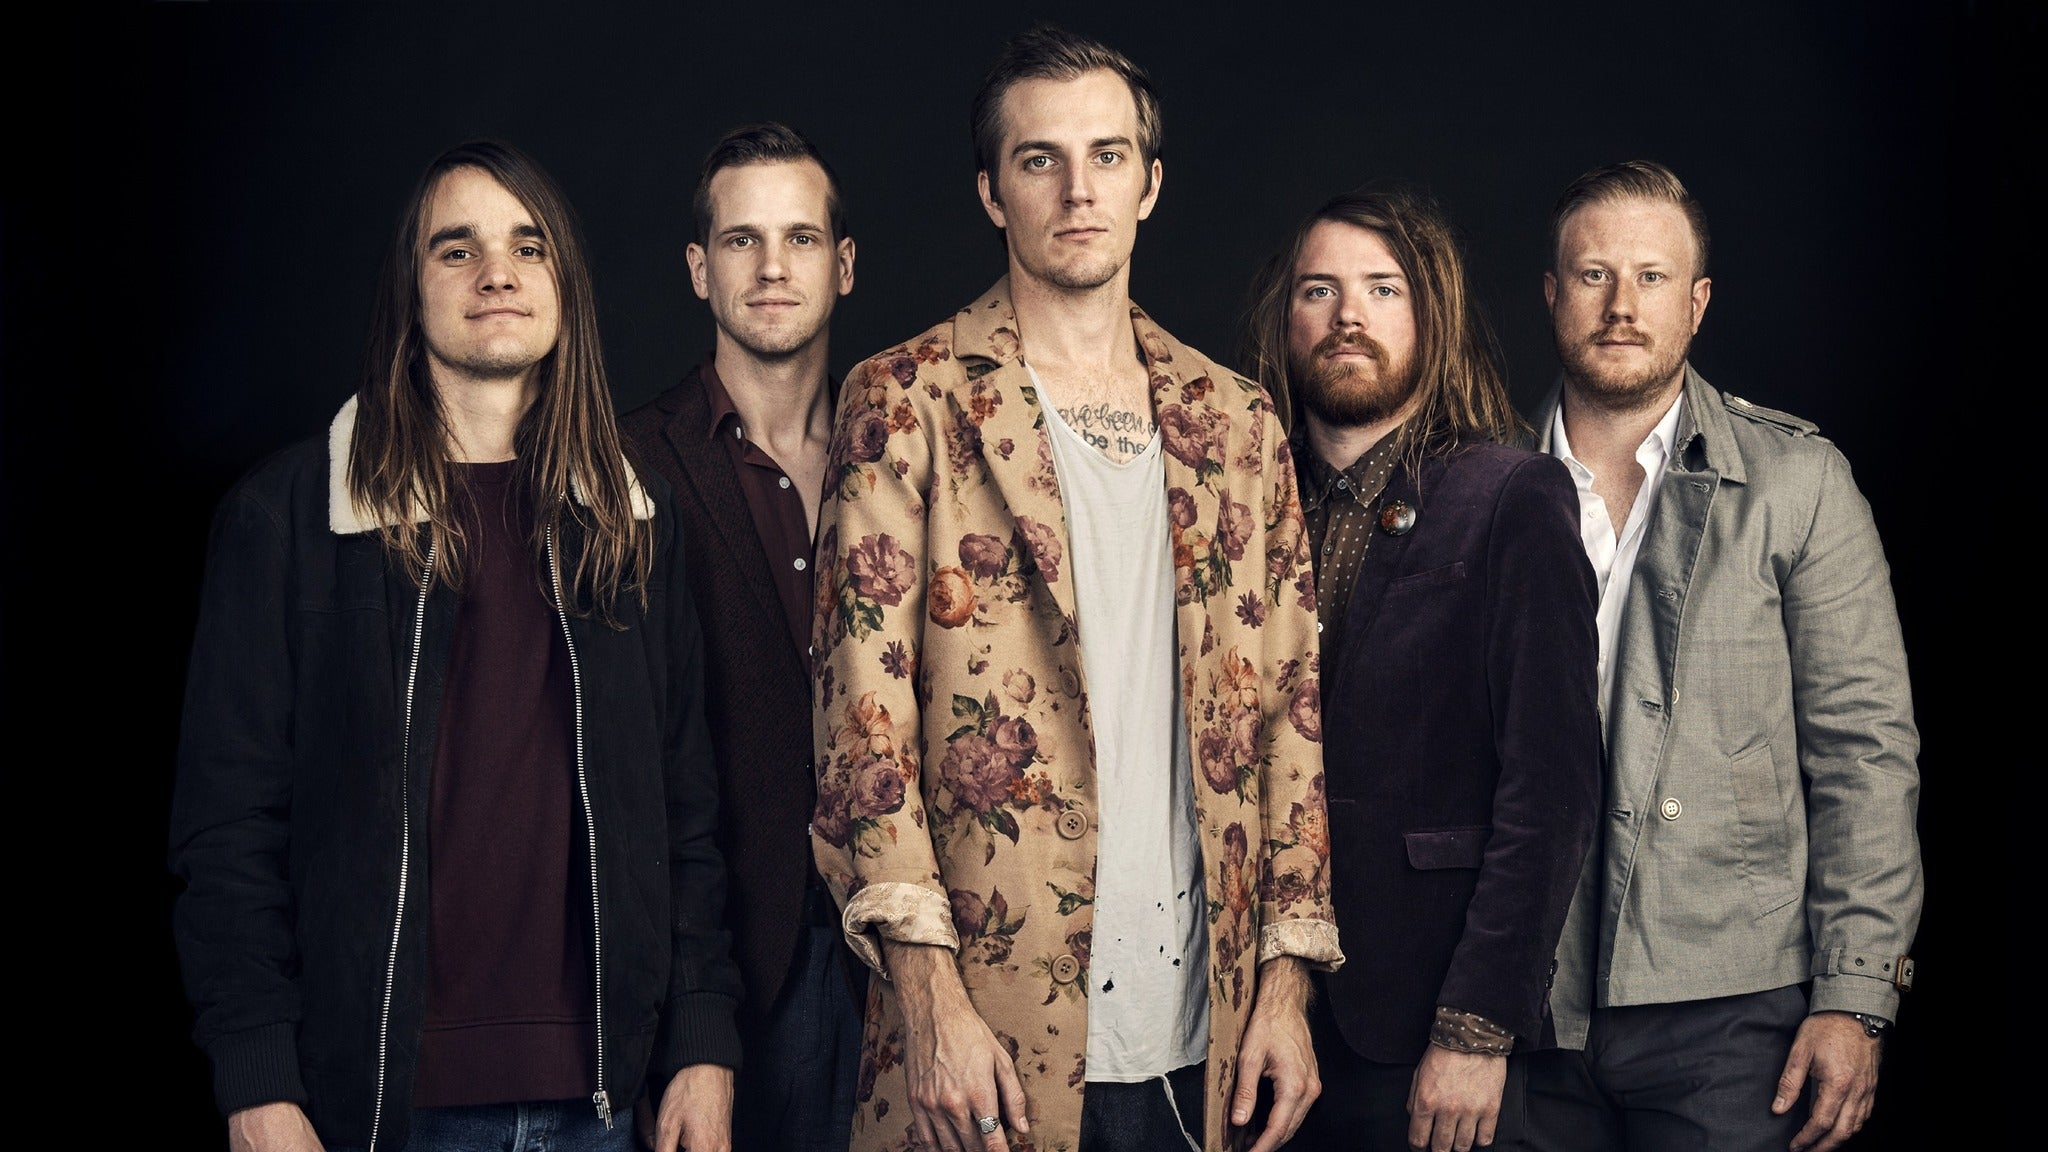 The Maine at Vanguard - OK